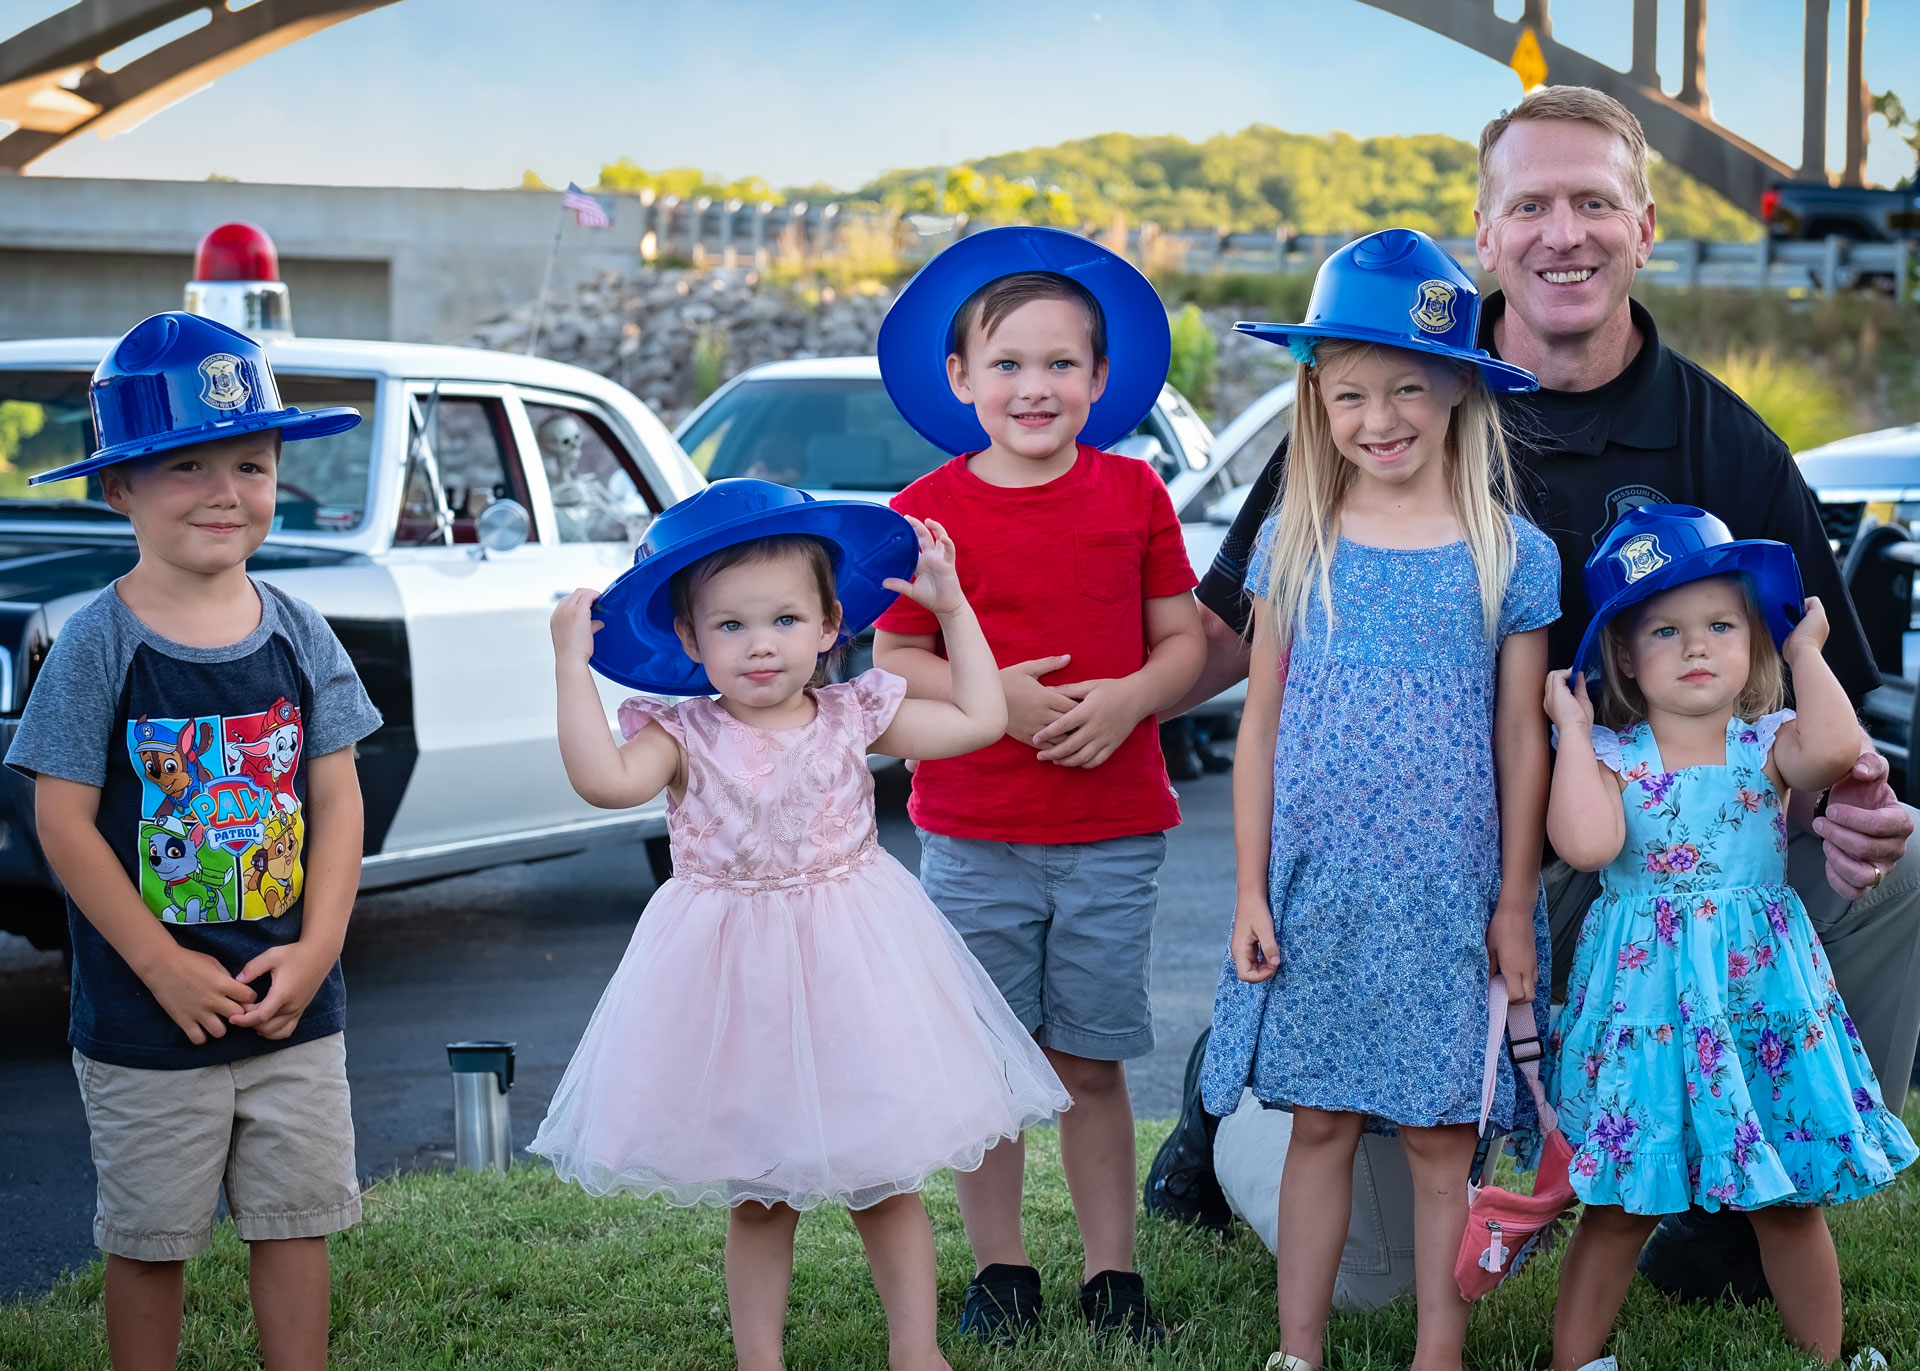 kids with classic police cars